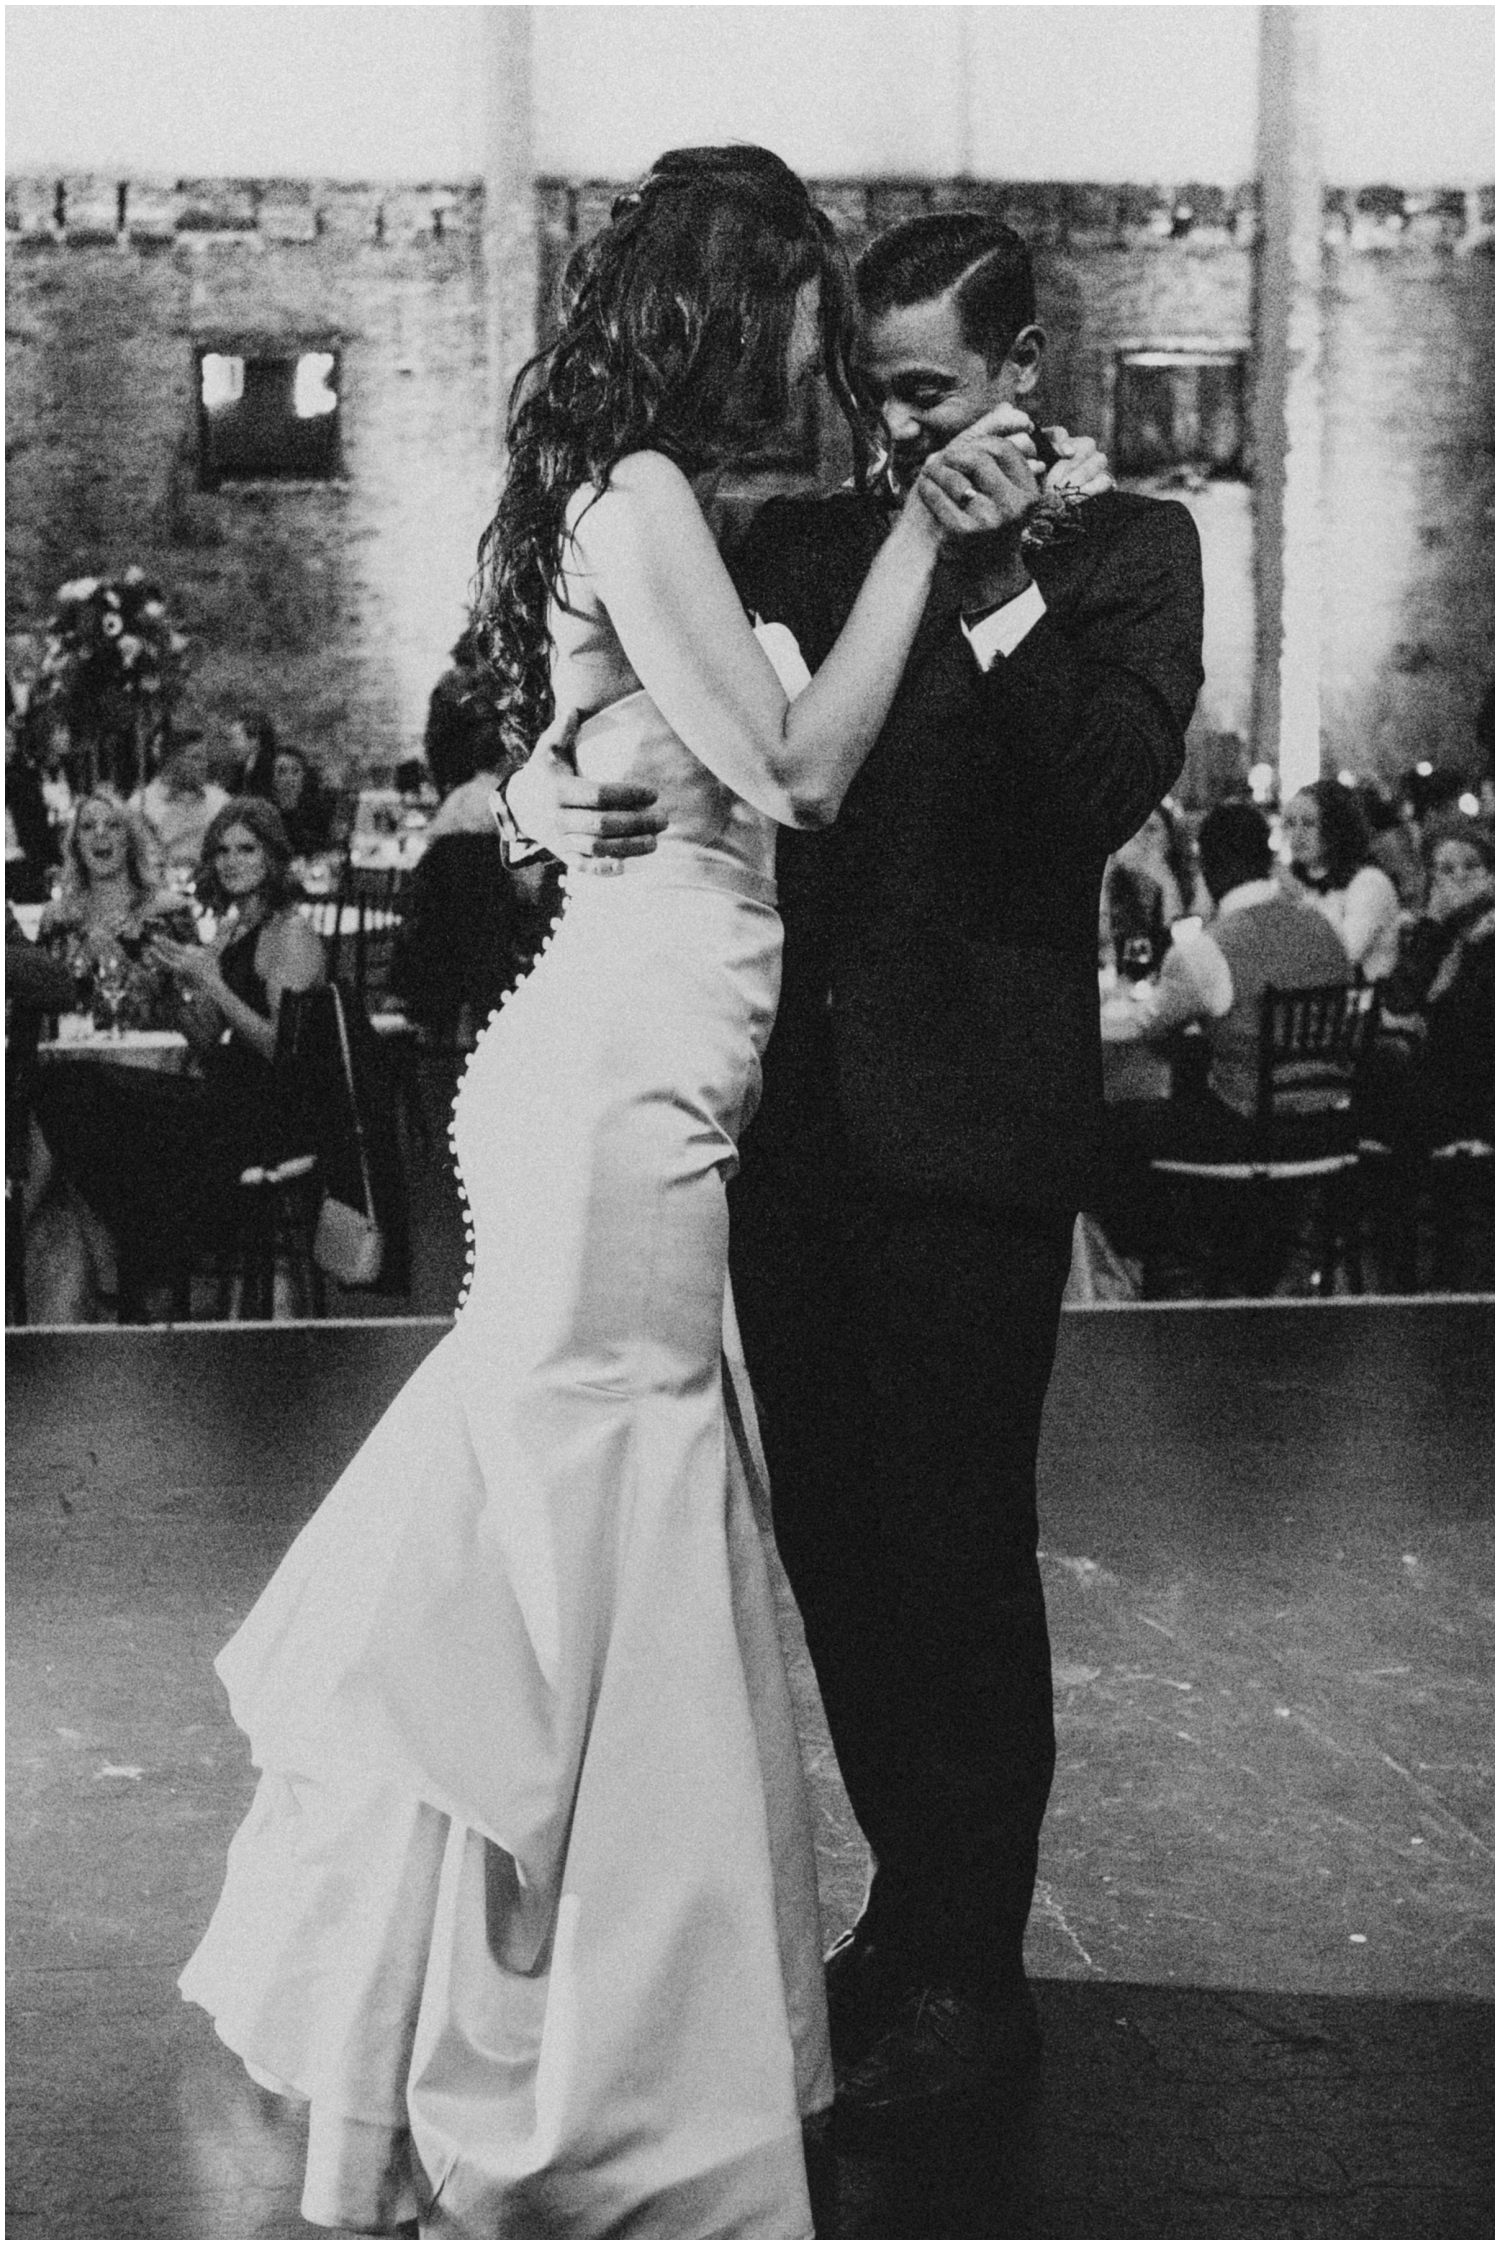 Bride and Groom Dancing at their Mn wedding Reception